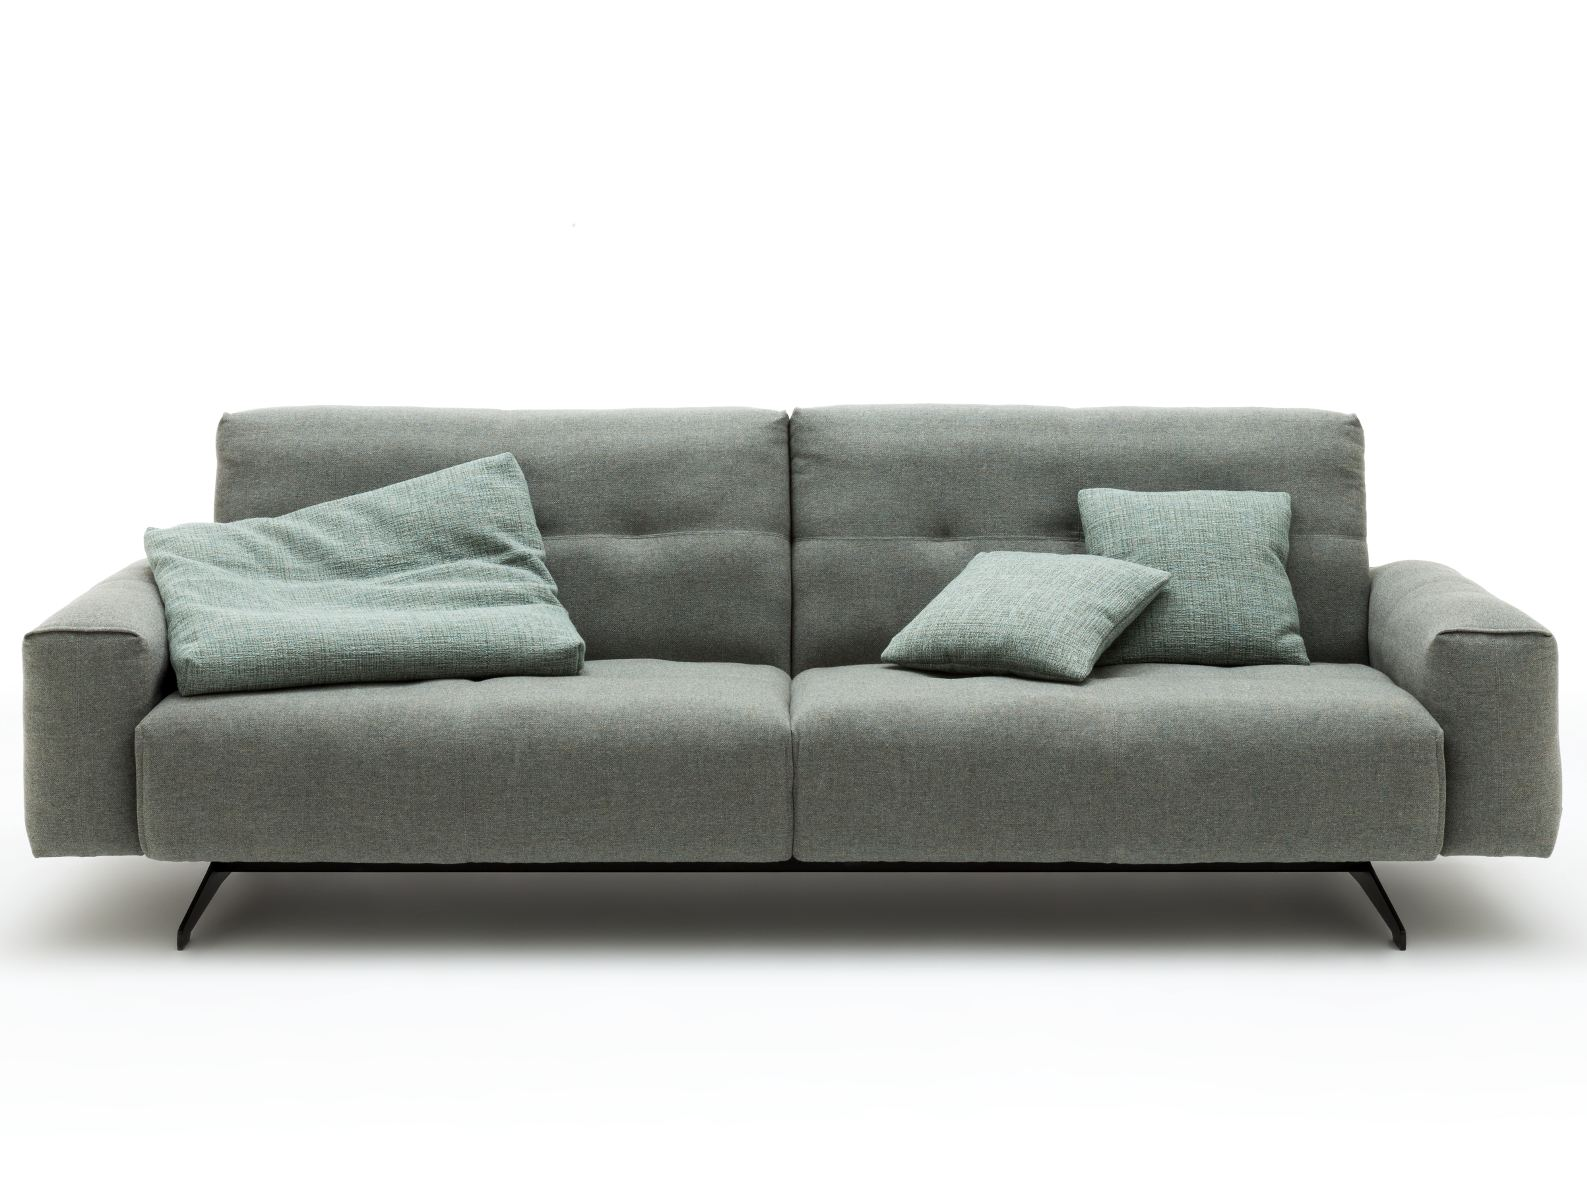 Rolf Benz Sofa Reinigen Rolf Benz 50 Fabric Sofa Rolf Benz 50 Collection By Rolf